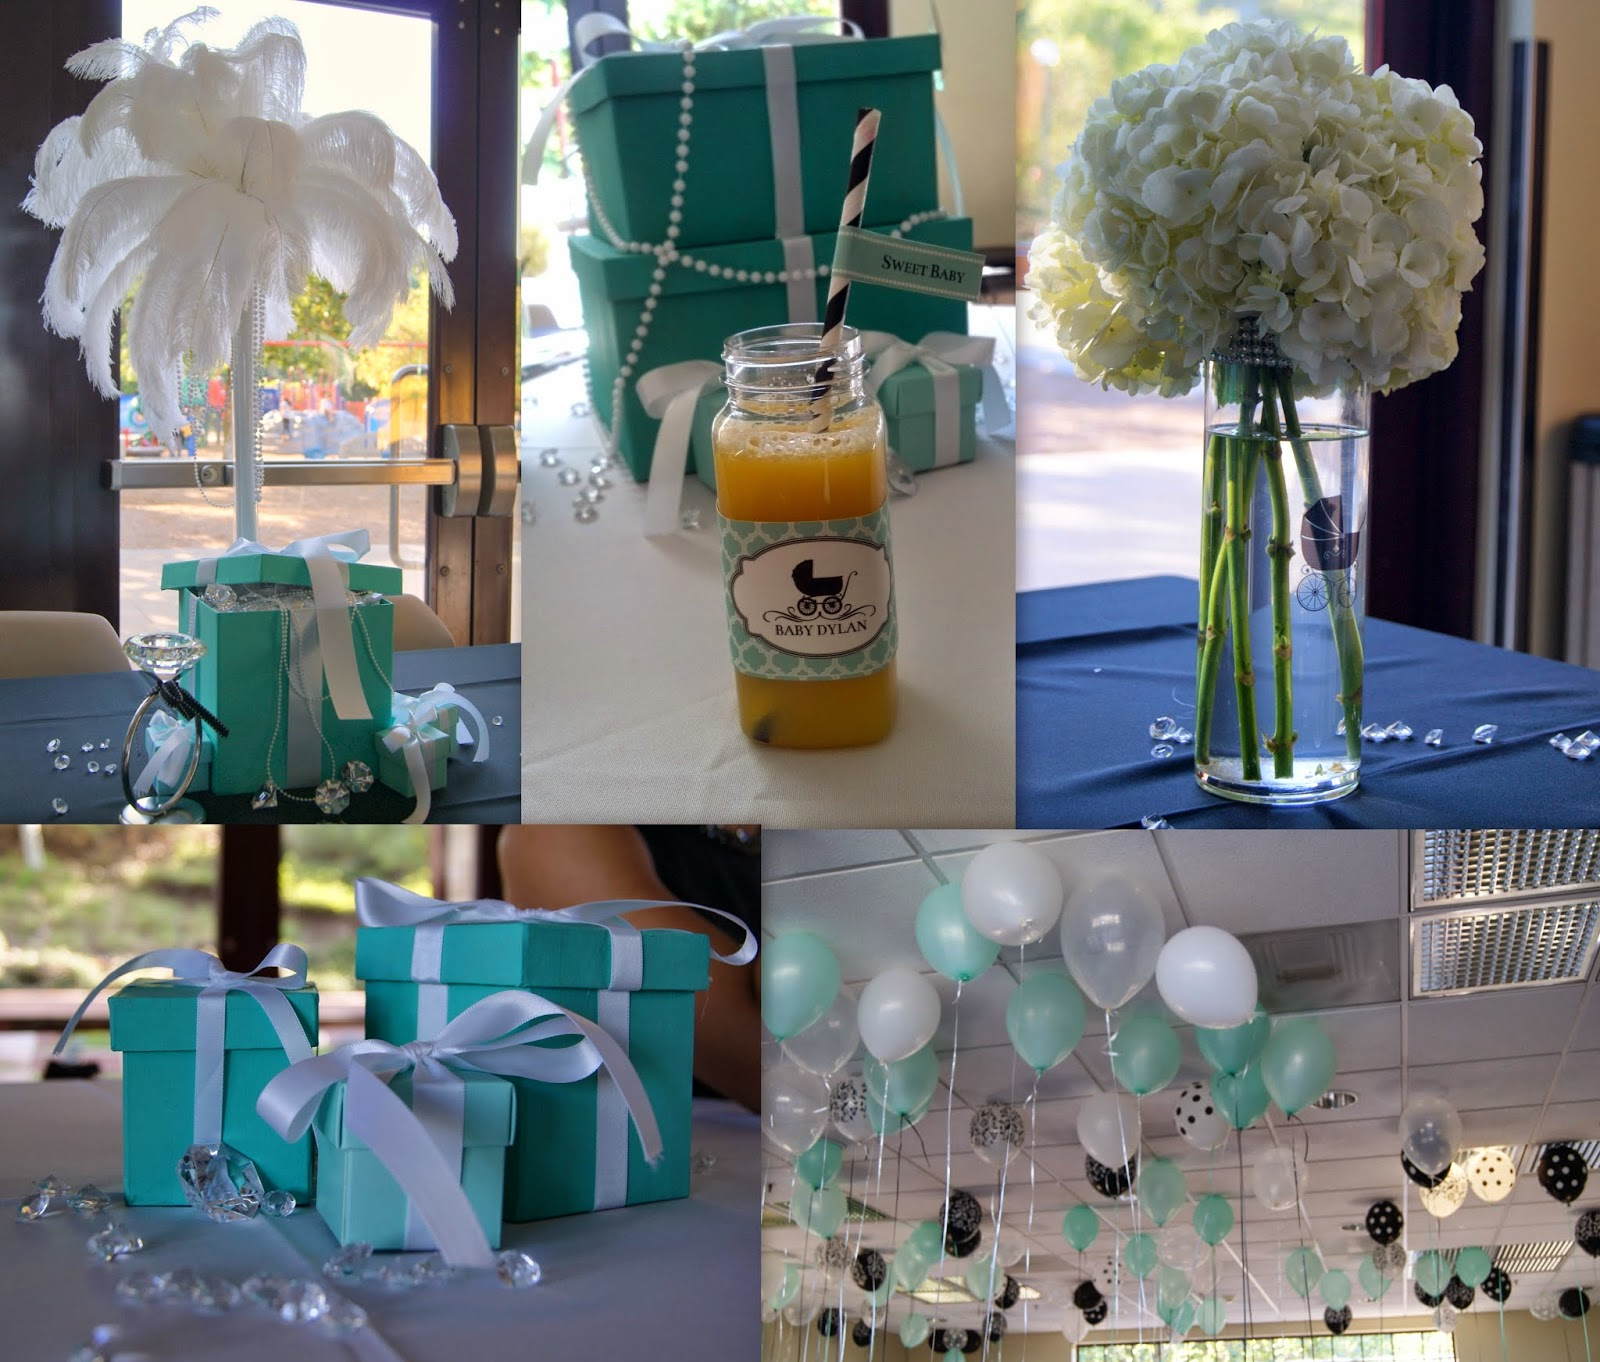 breakfast at tiffany's party, tiffany box centerpieces, feather centerpieces, balloon ceiling, allthingssllim